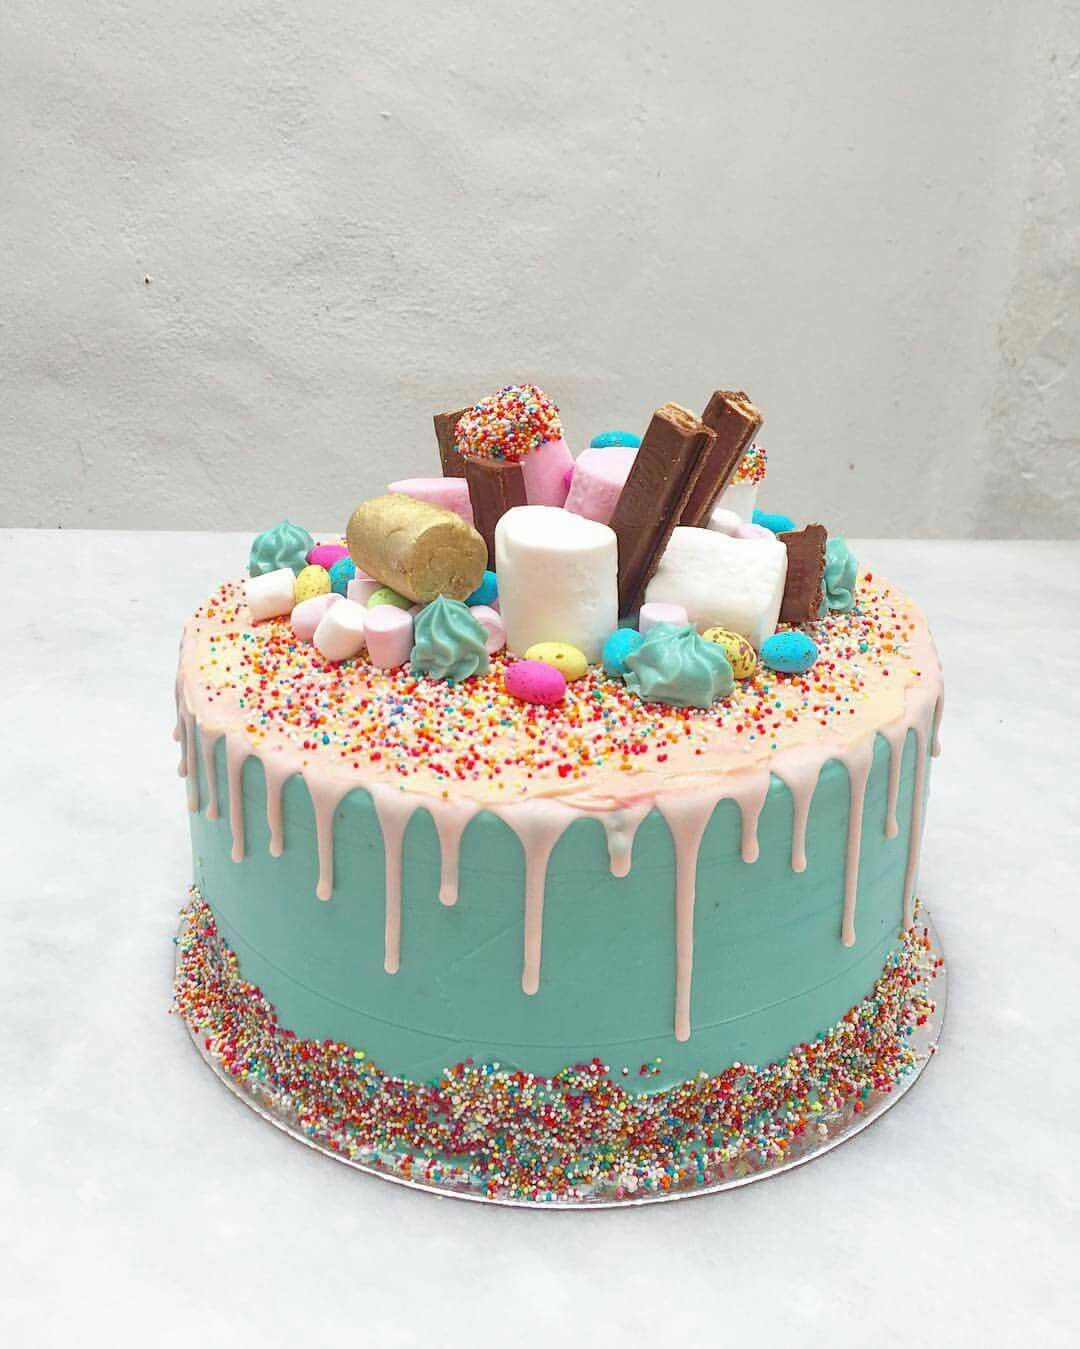 Idea by Edelweiss Hankey on Cakes | Cool birthday cakes ...